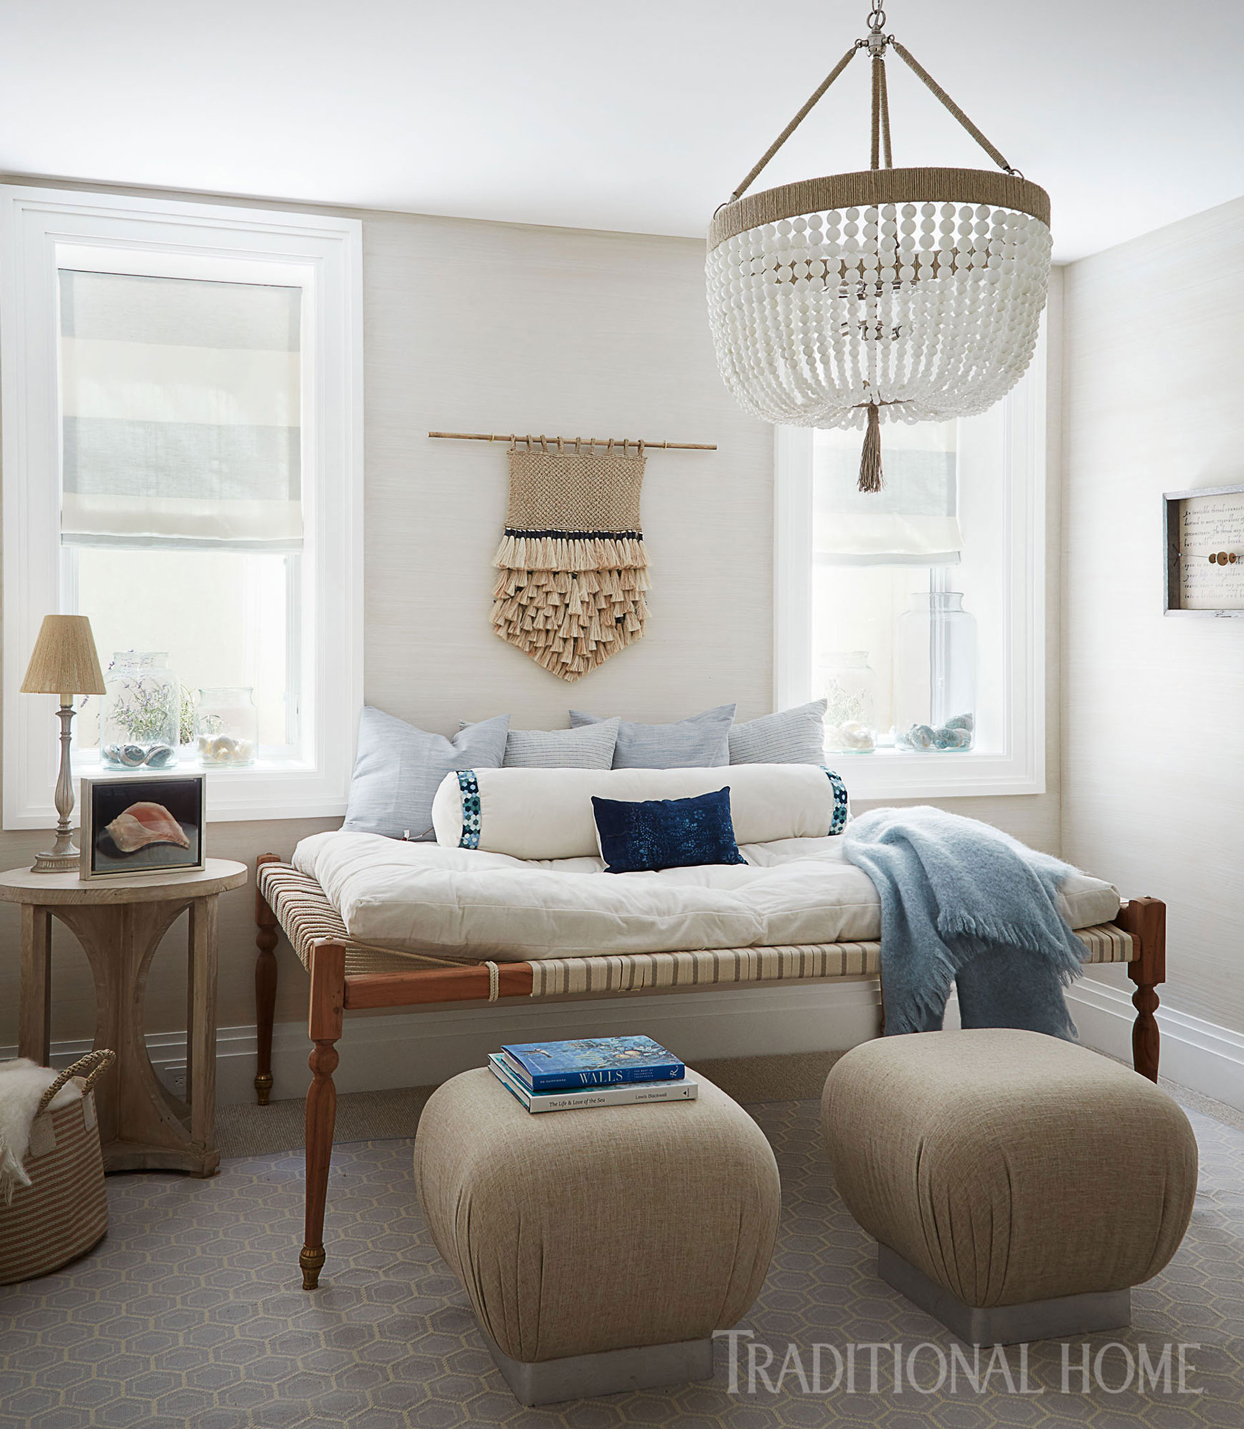 indian bed with upholstered stools